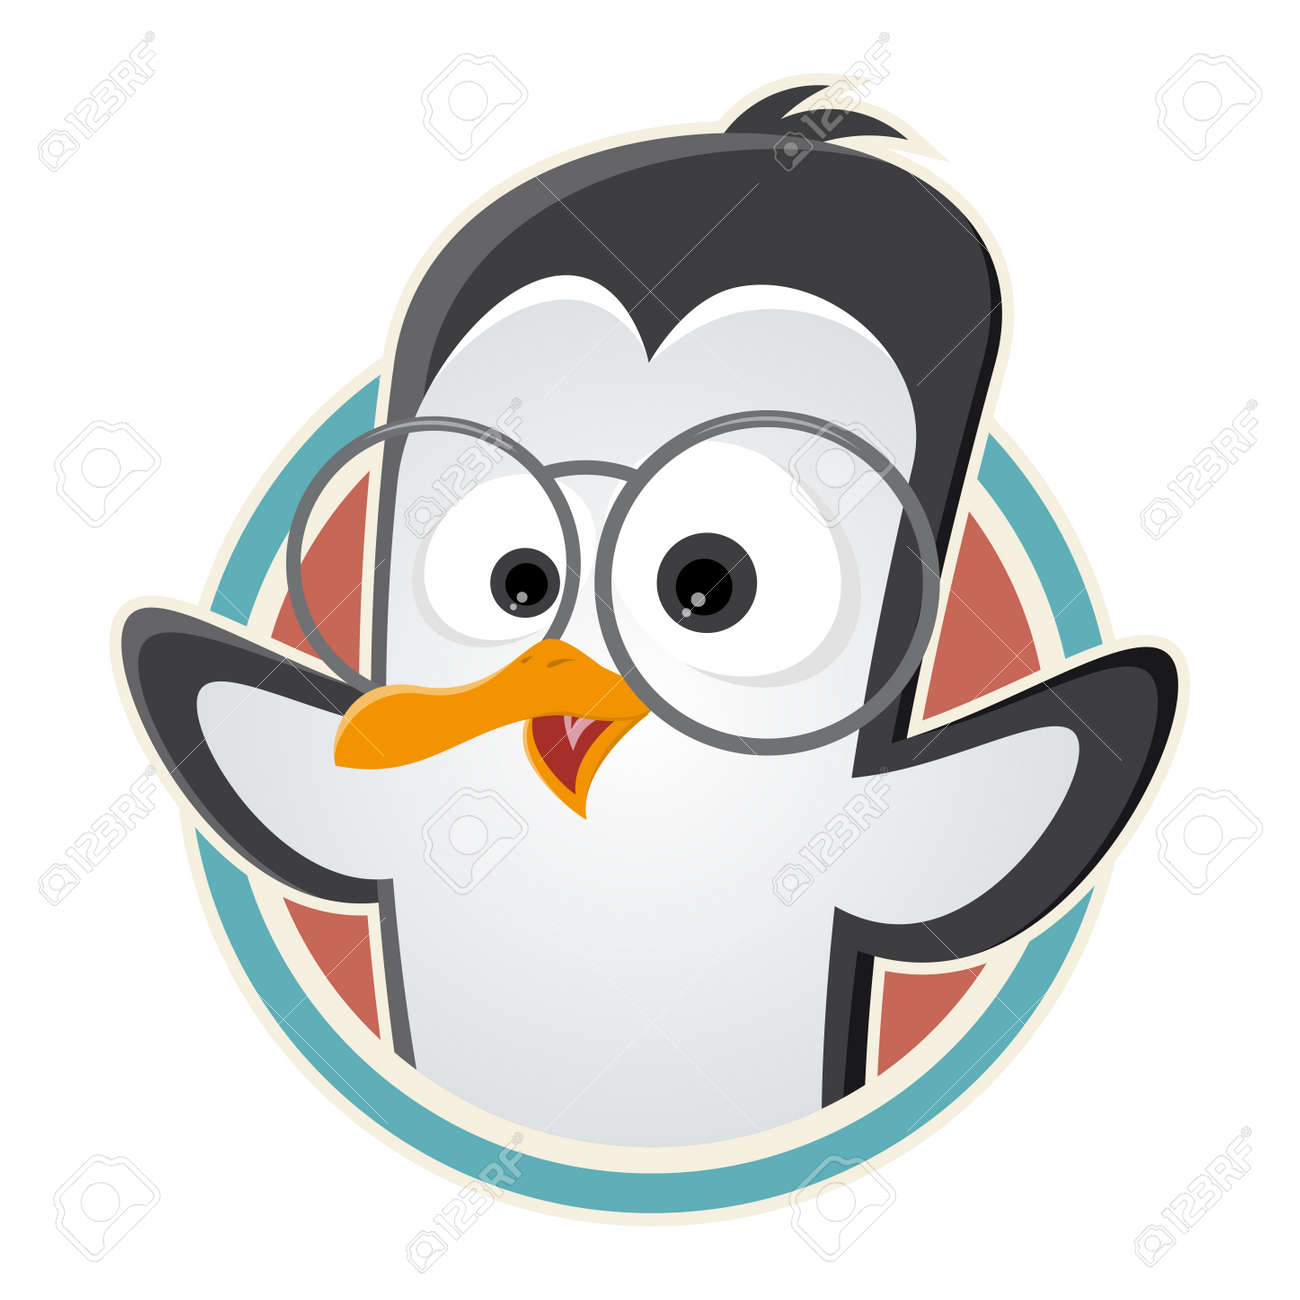 funny cartoon penguin with glasses in a badge royalty free